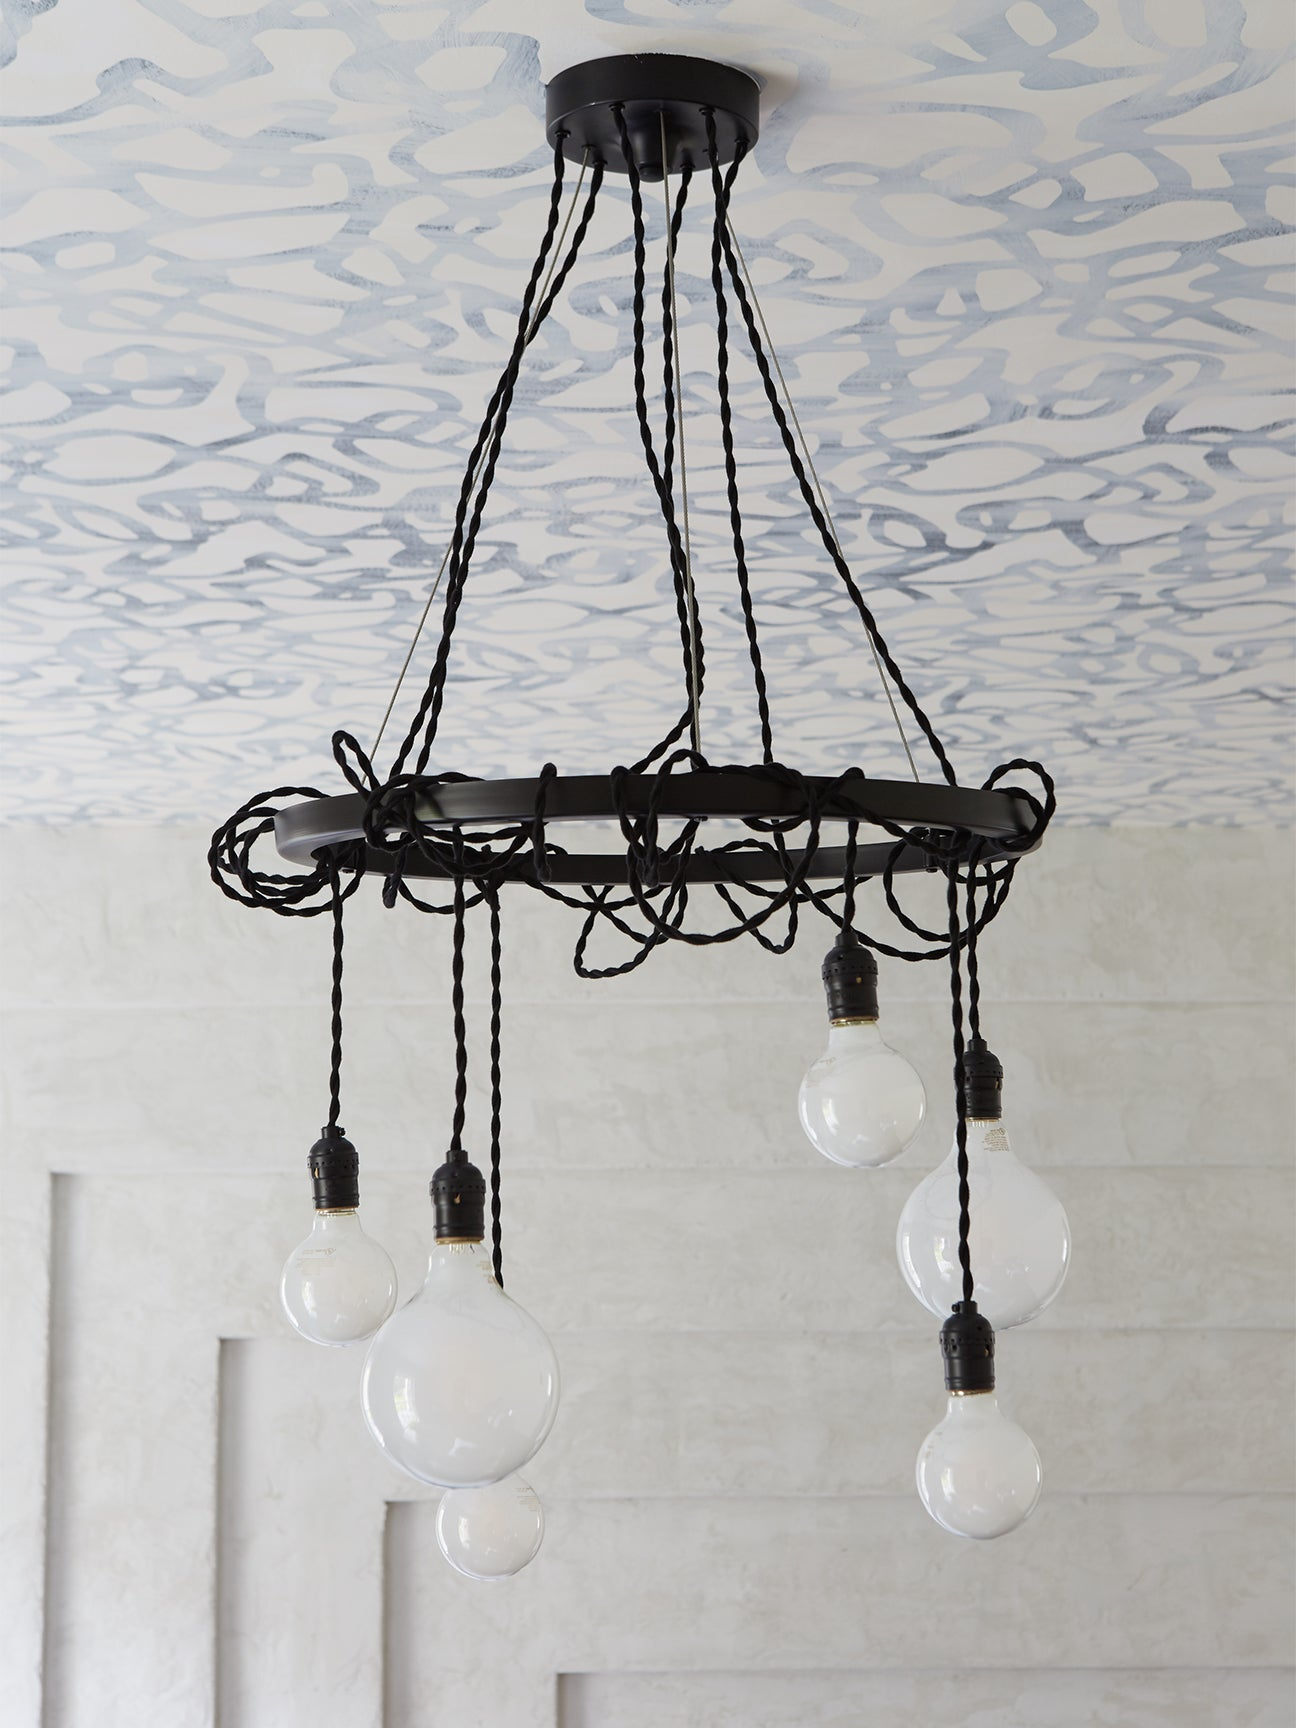 light bulbs on ropes hanging from a circular chandelier